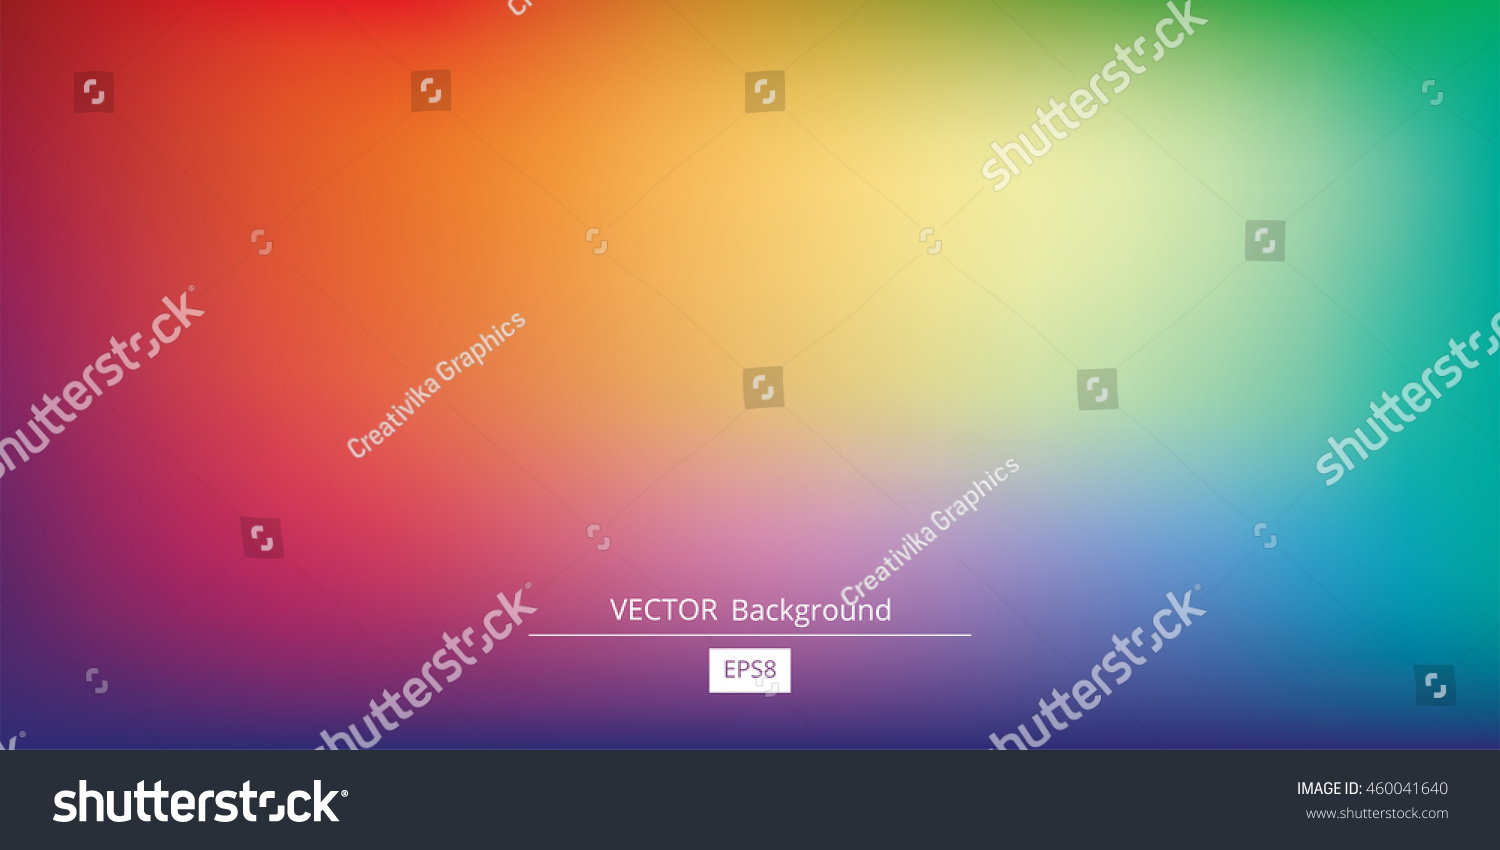 Abstract blurred gradient mesh background in bright rainbow colors. Colorful smooth banner template. Easy editable soft colored vector illustration in EPS8 without transparency. #460041640